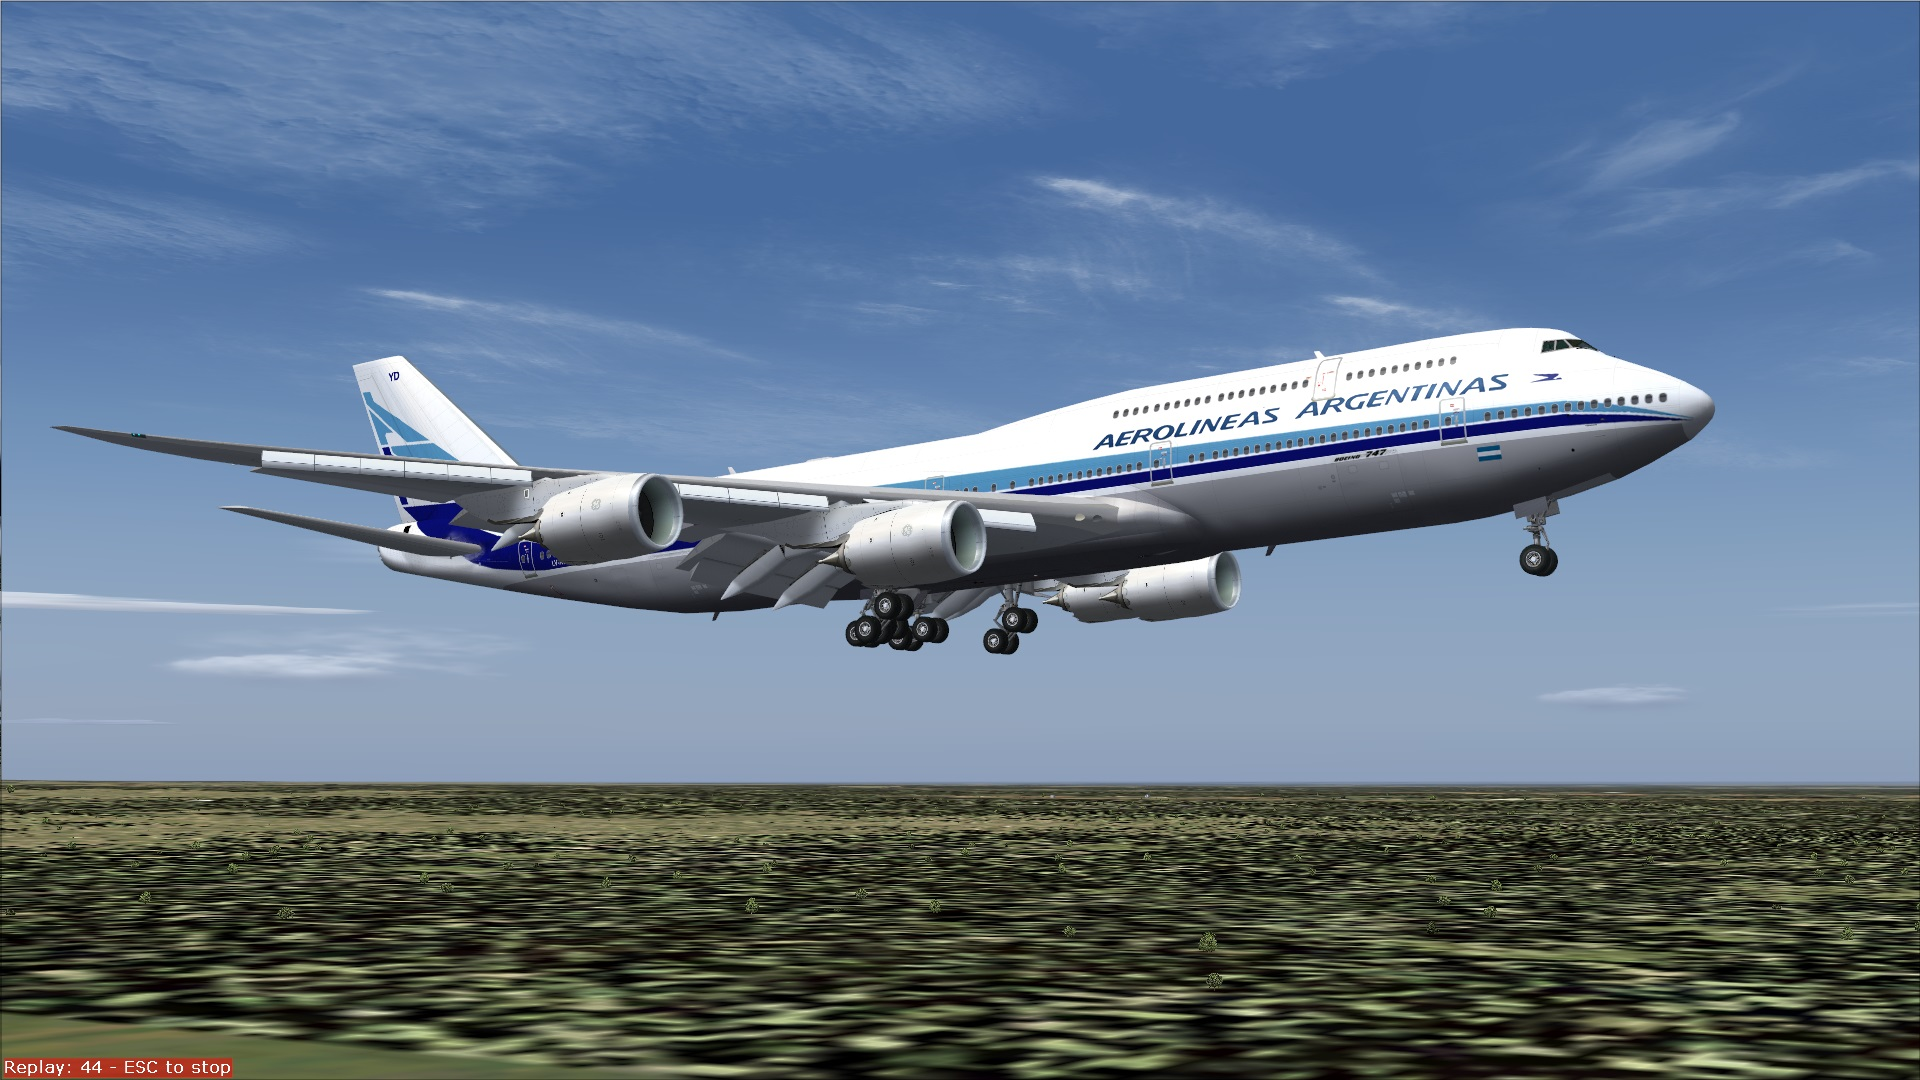 fs-freeware net - Civil Aircraft